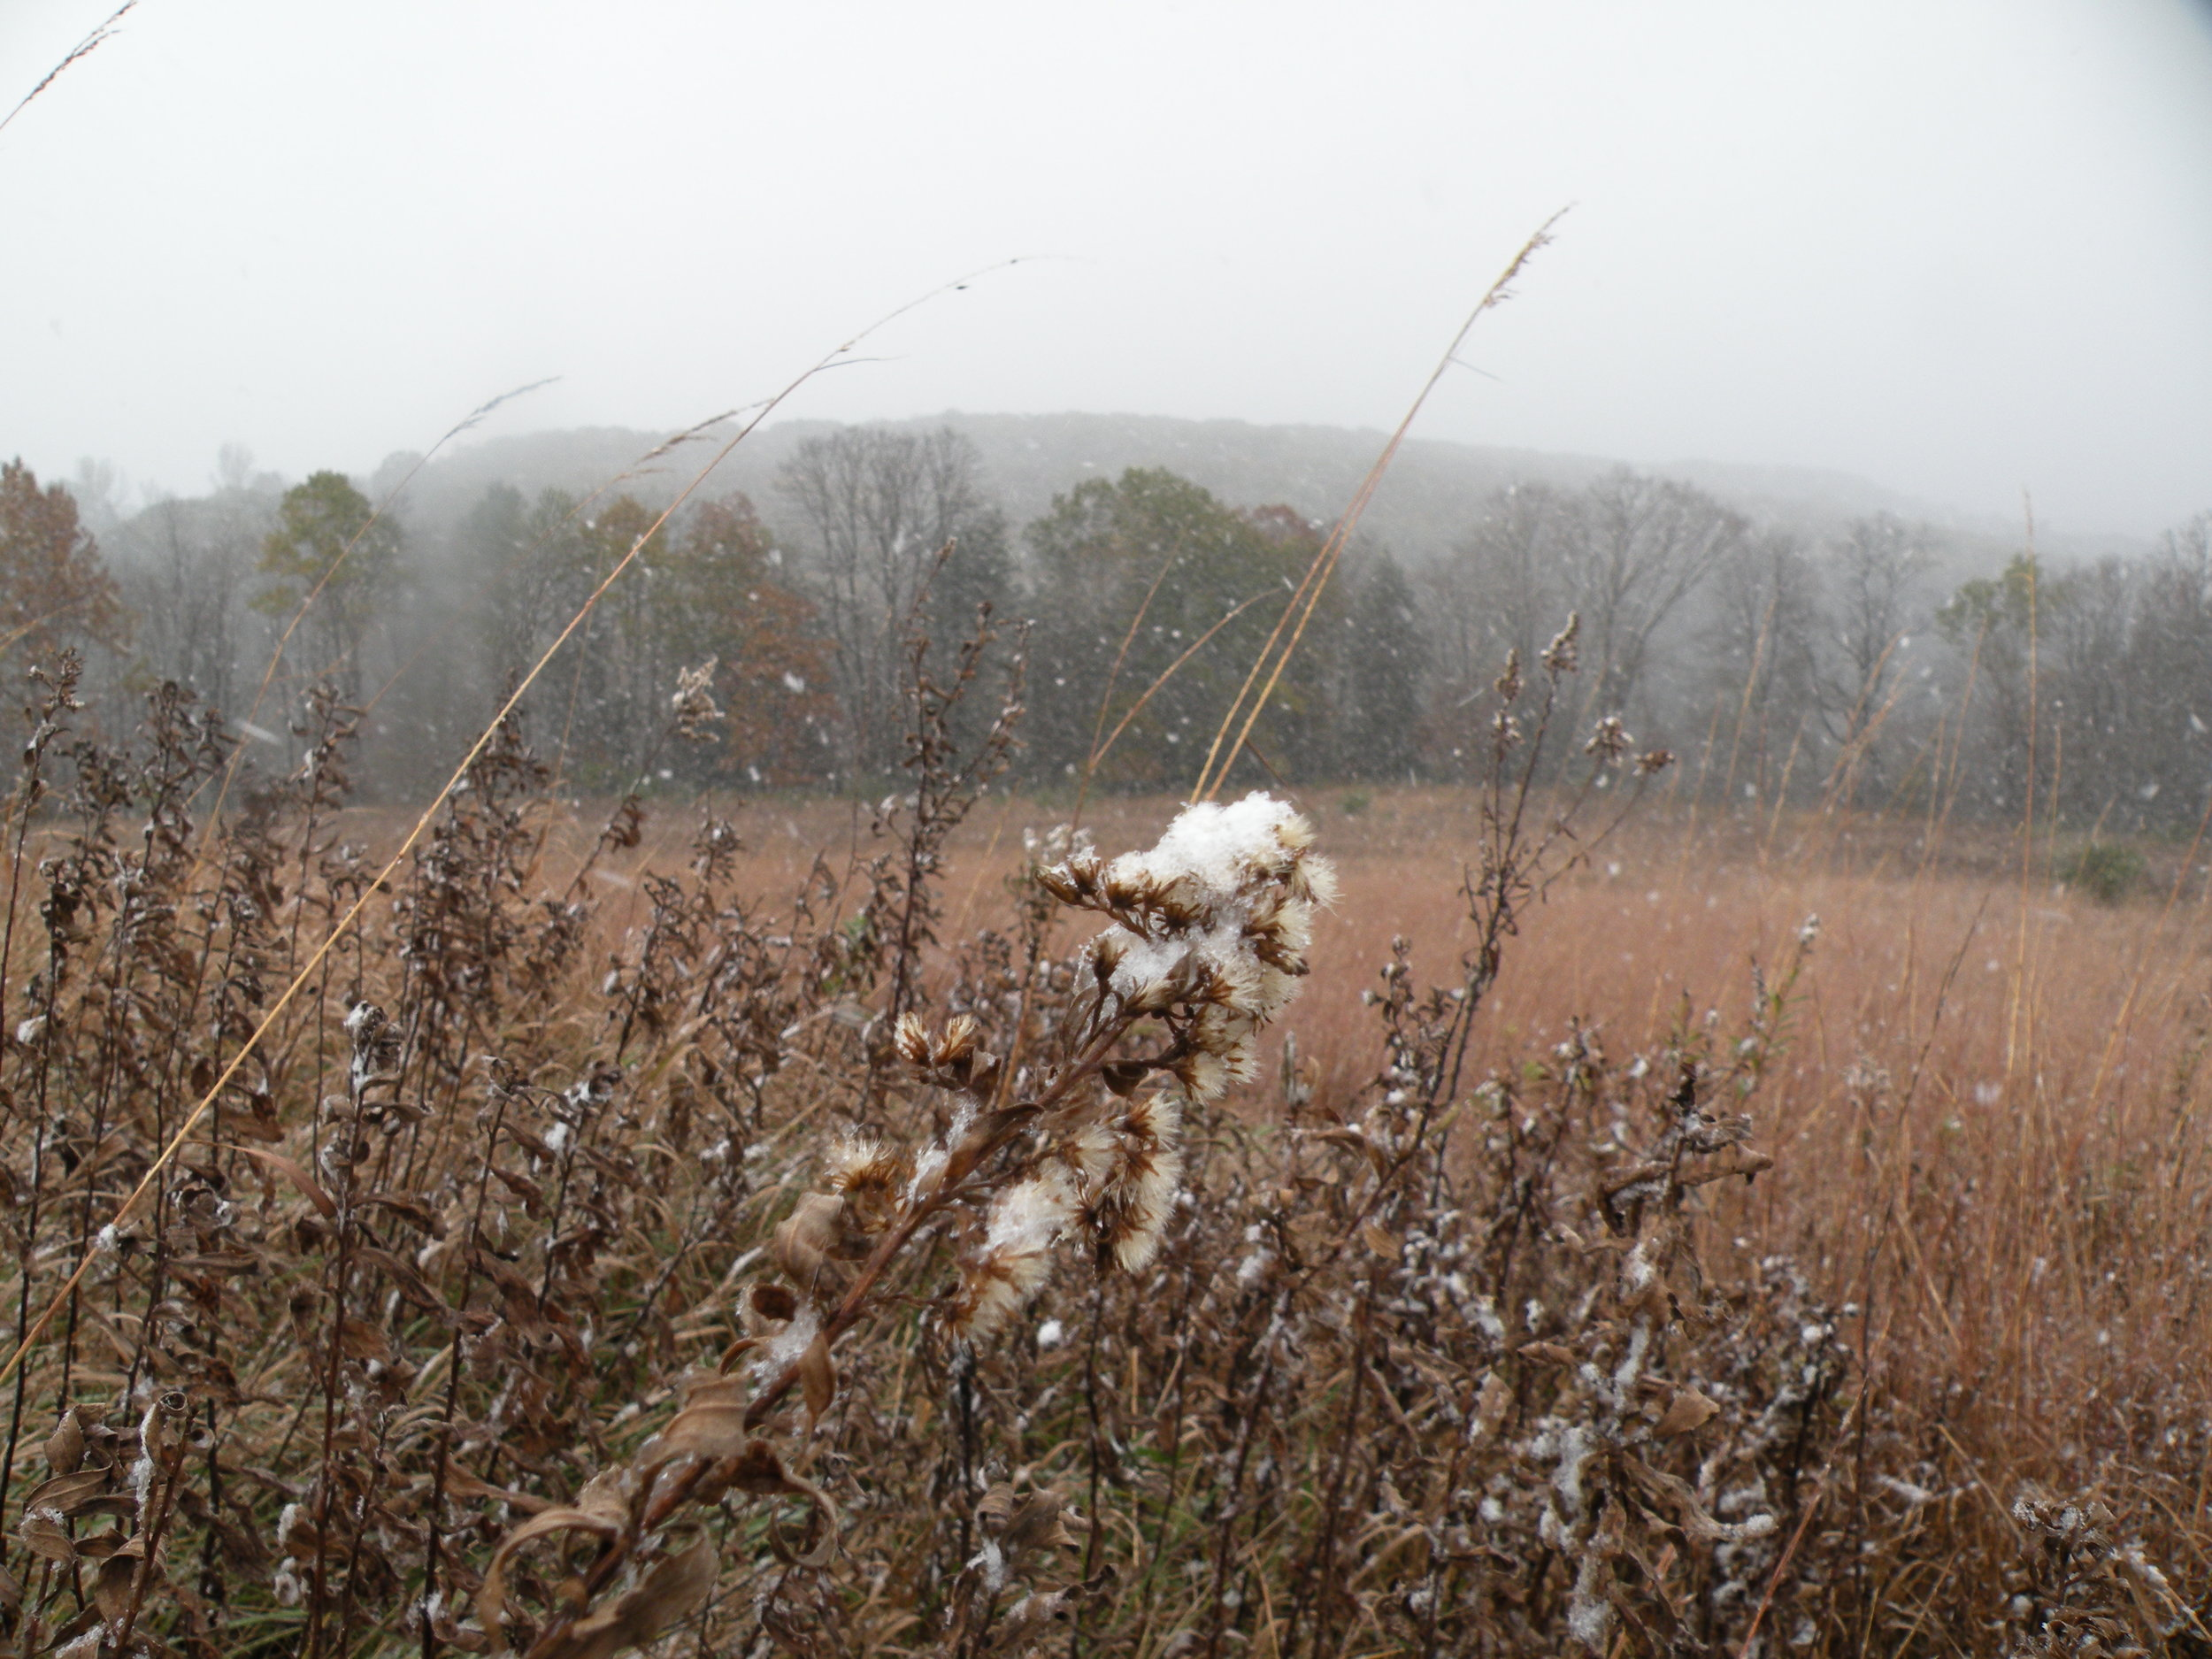 'Lizard Grey' soapstone skies of November bring snow to the prairie, Photo by Rob McClure